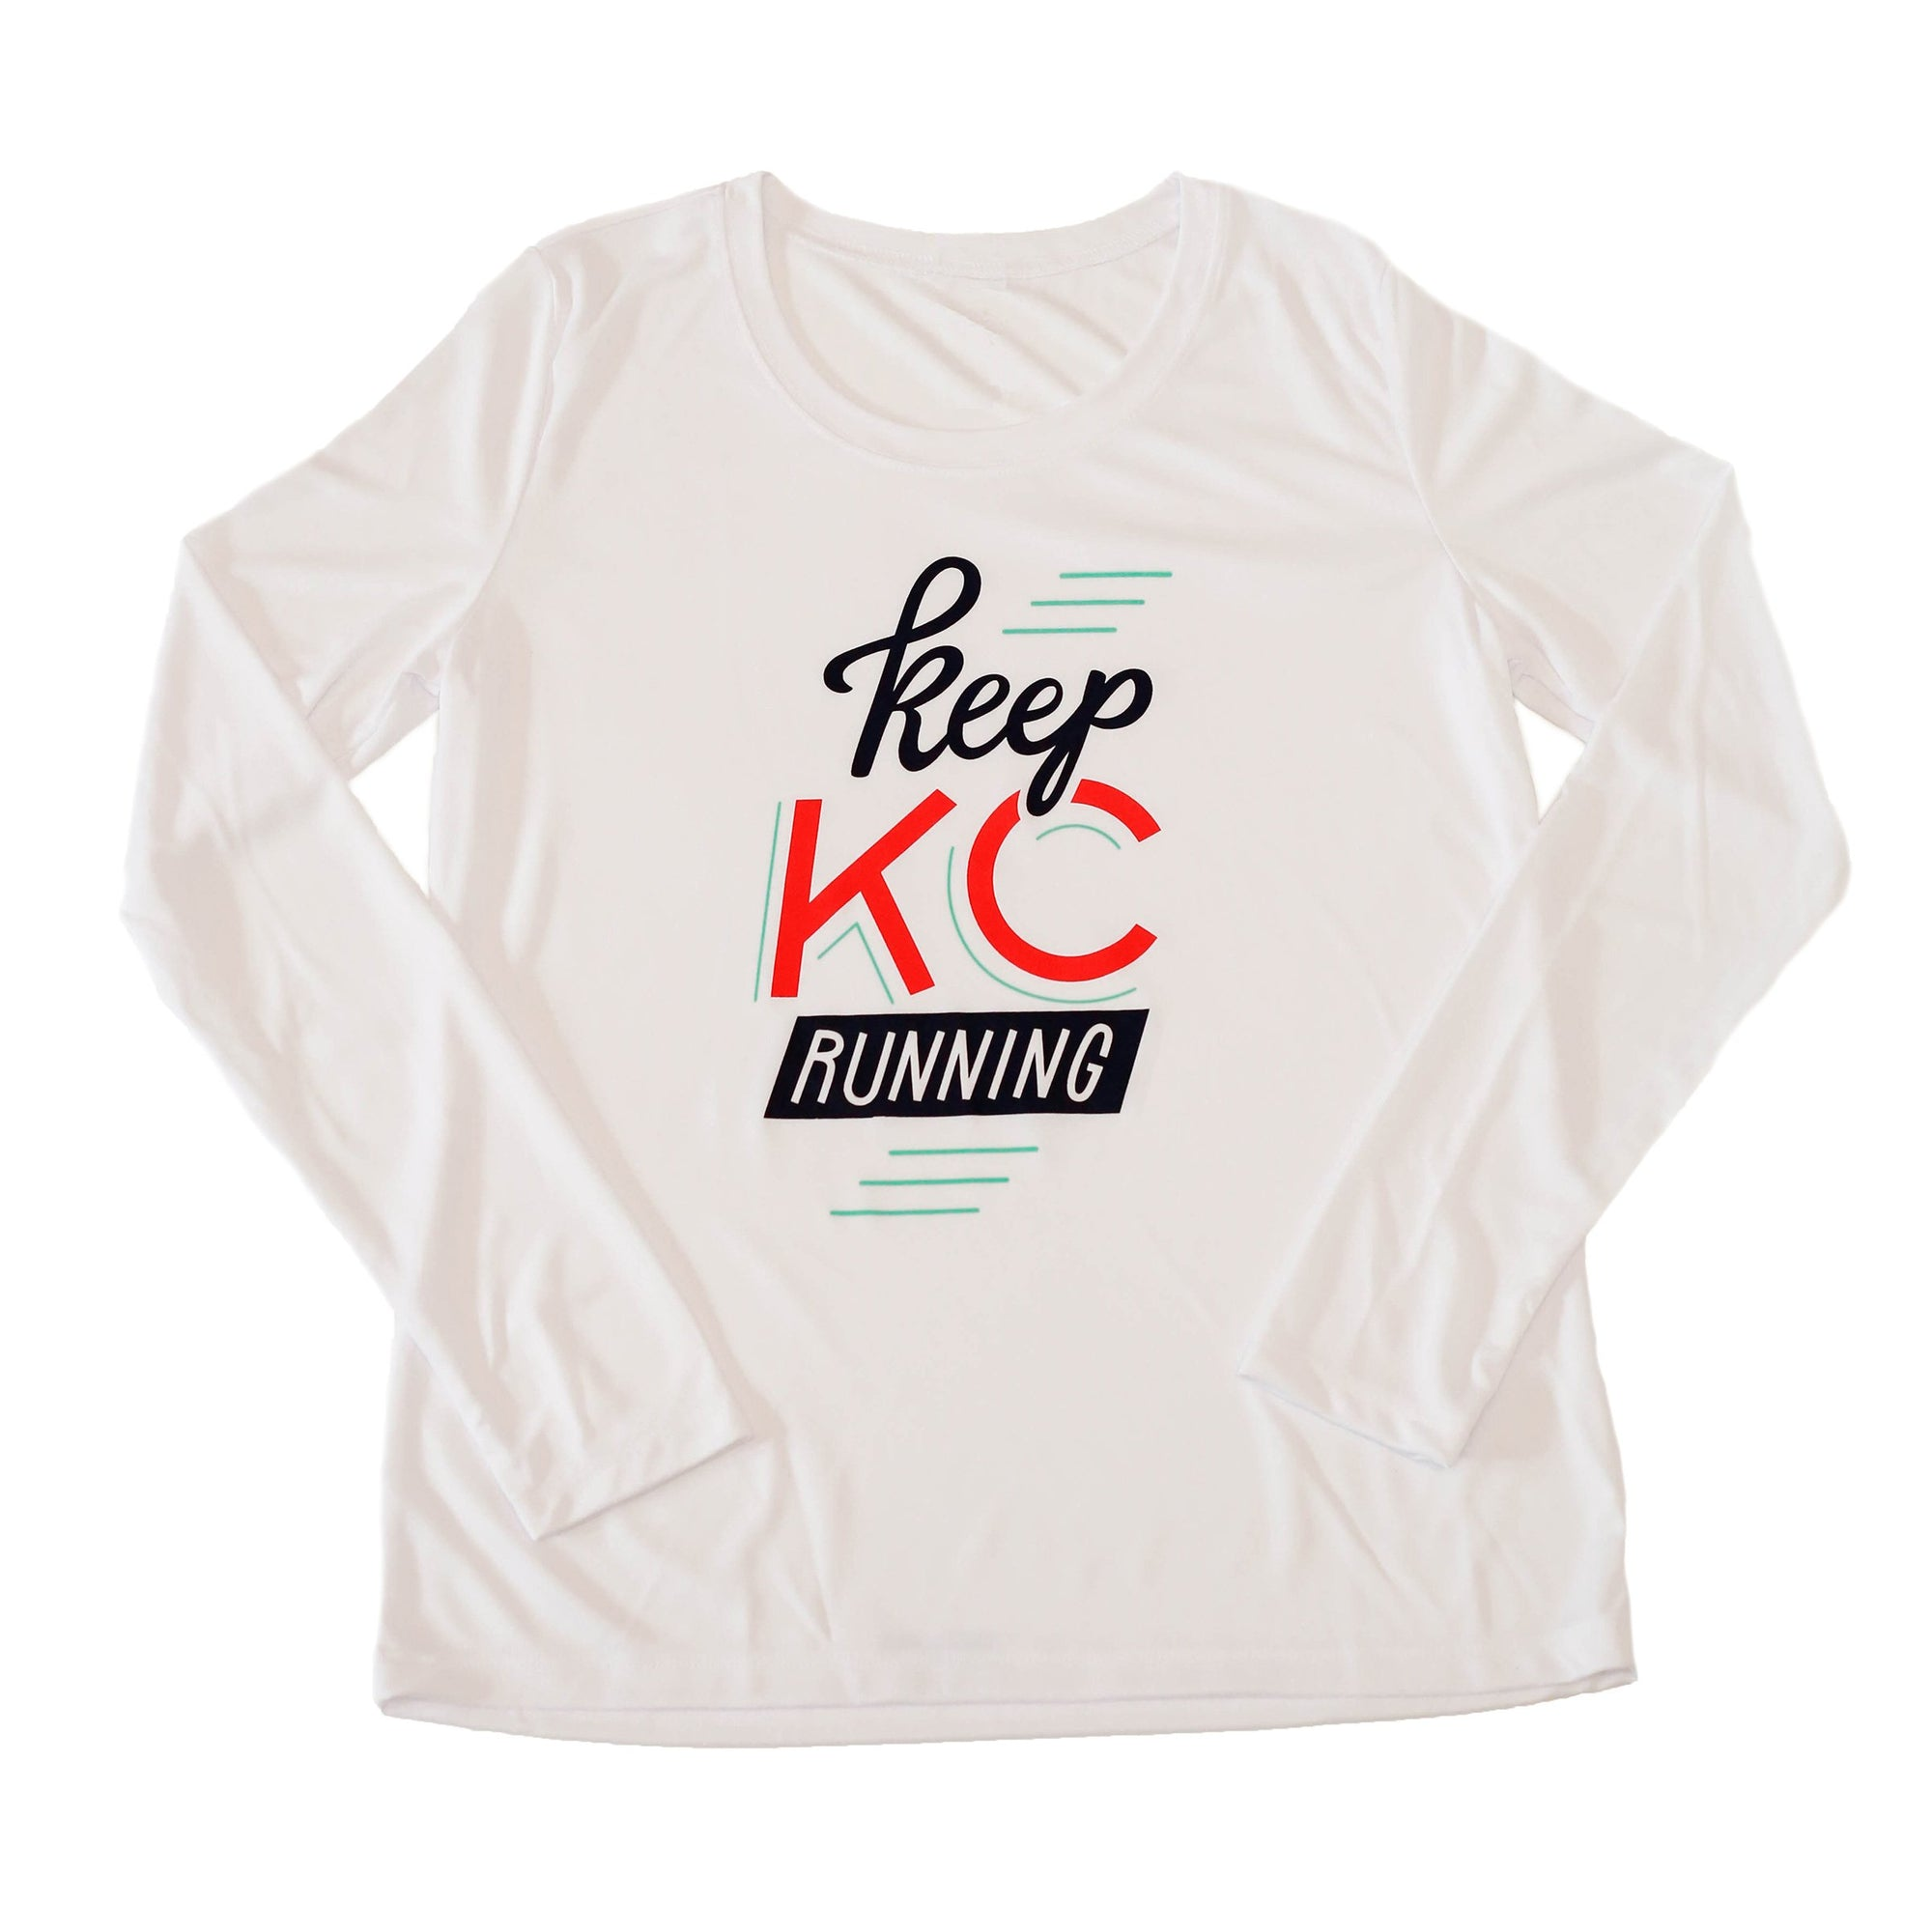 Keep KC Running | White Women's Performance Long Sleeve